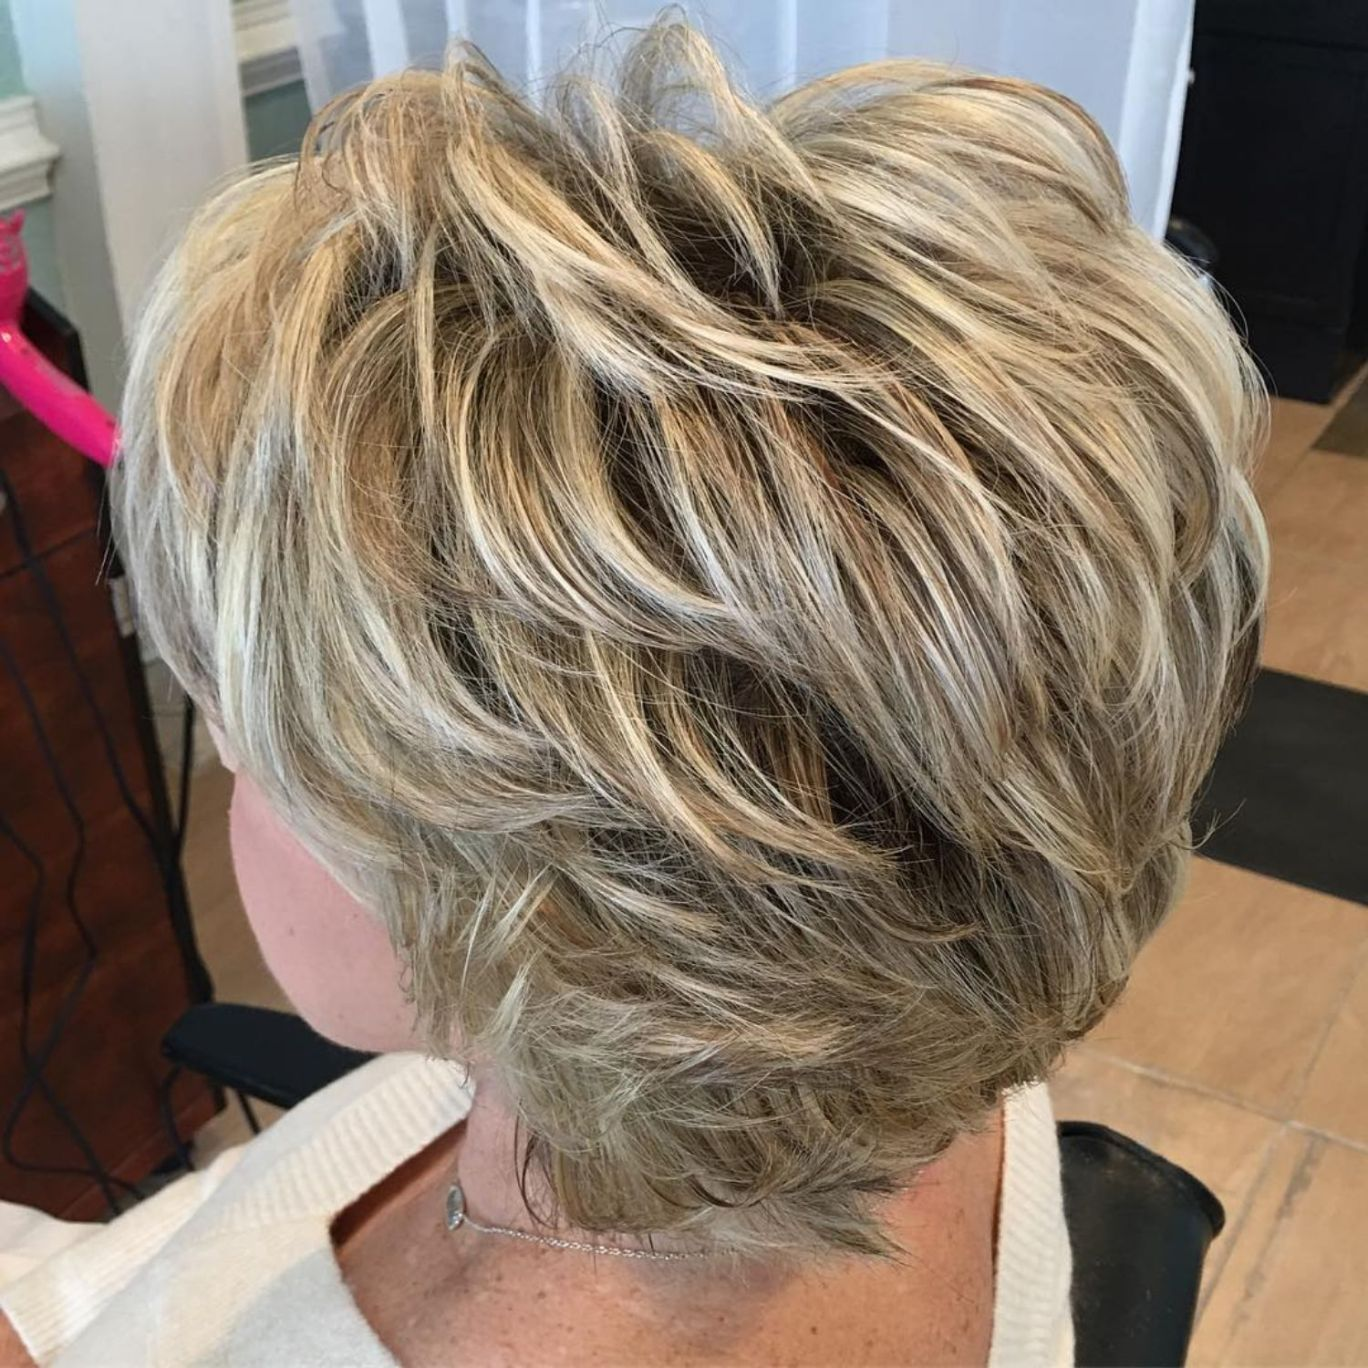 Short To Medium Feathered Hairstyle For Older Women Modern Hairstyles Thick Hair Styles Hair Styles